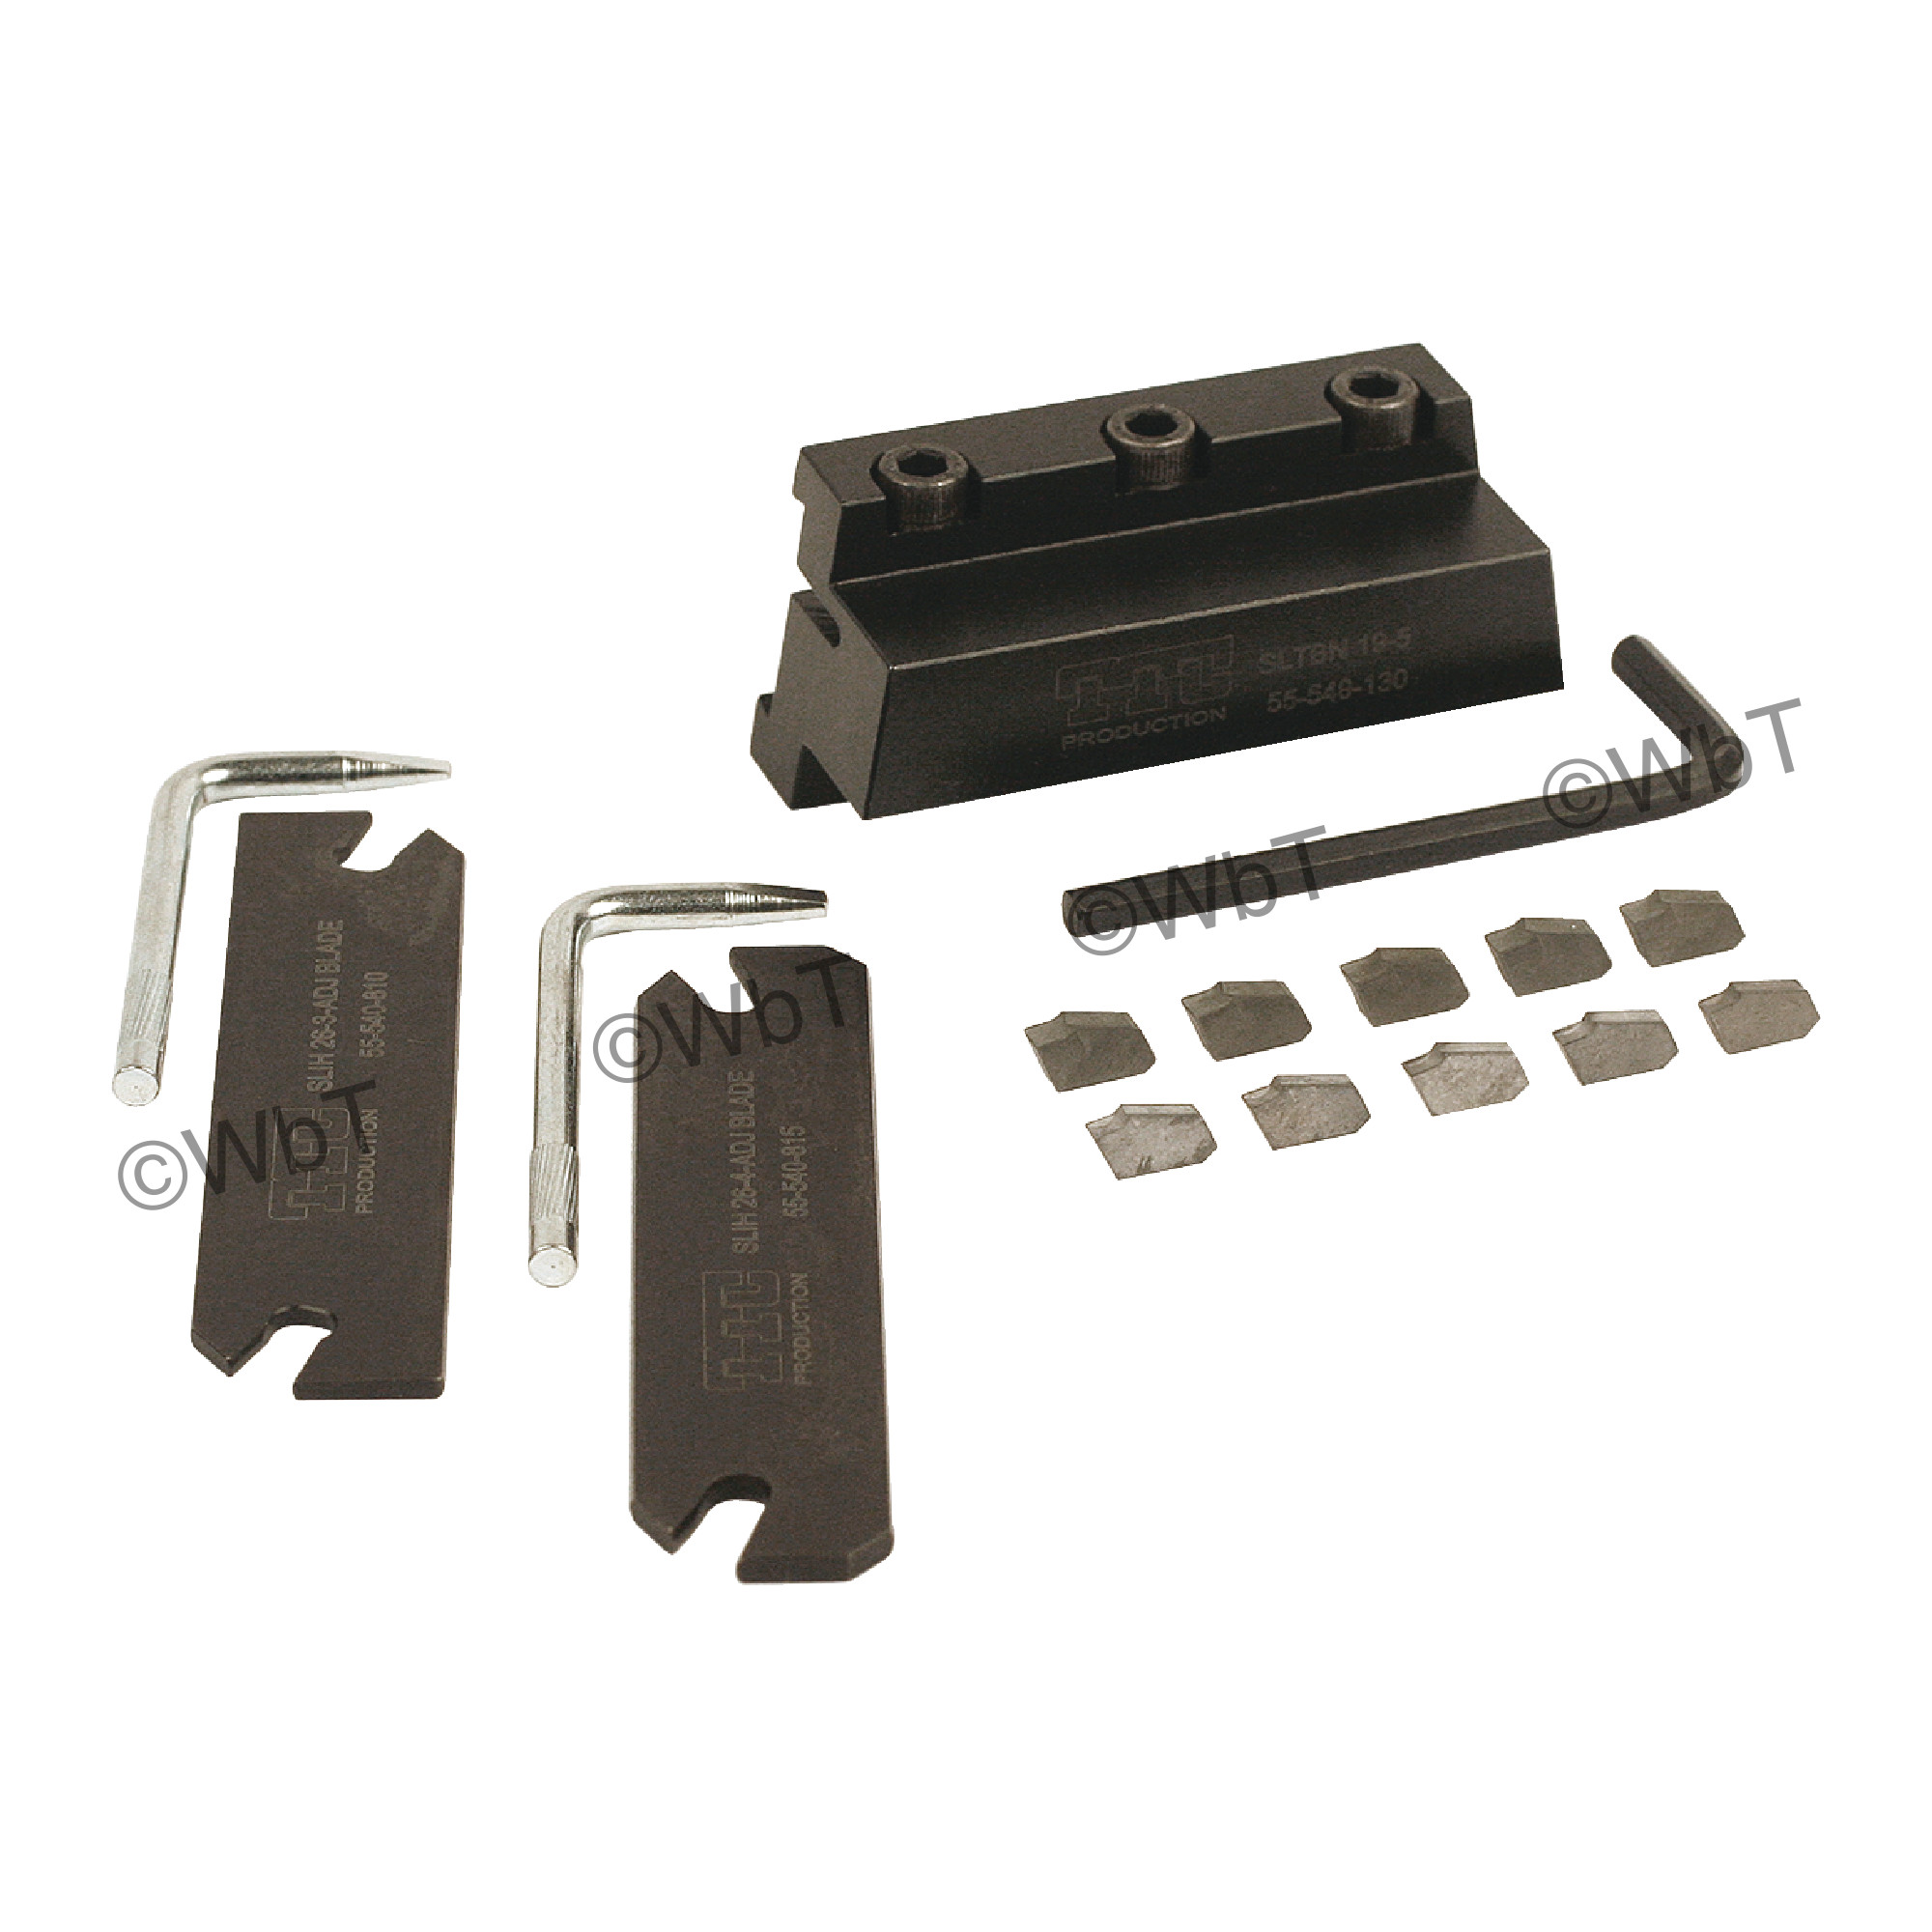 """TTC PRODUCTION - SCOT-15 Blade Block Set / 3/4"""" X 3/4"""" Shank / For 1.0"""" (26mm) Height Blades / With (5) GTN-3 C6 Uncoate"""